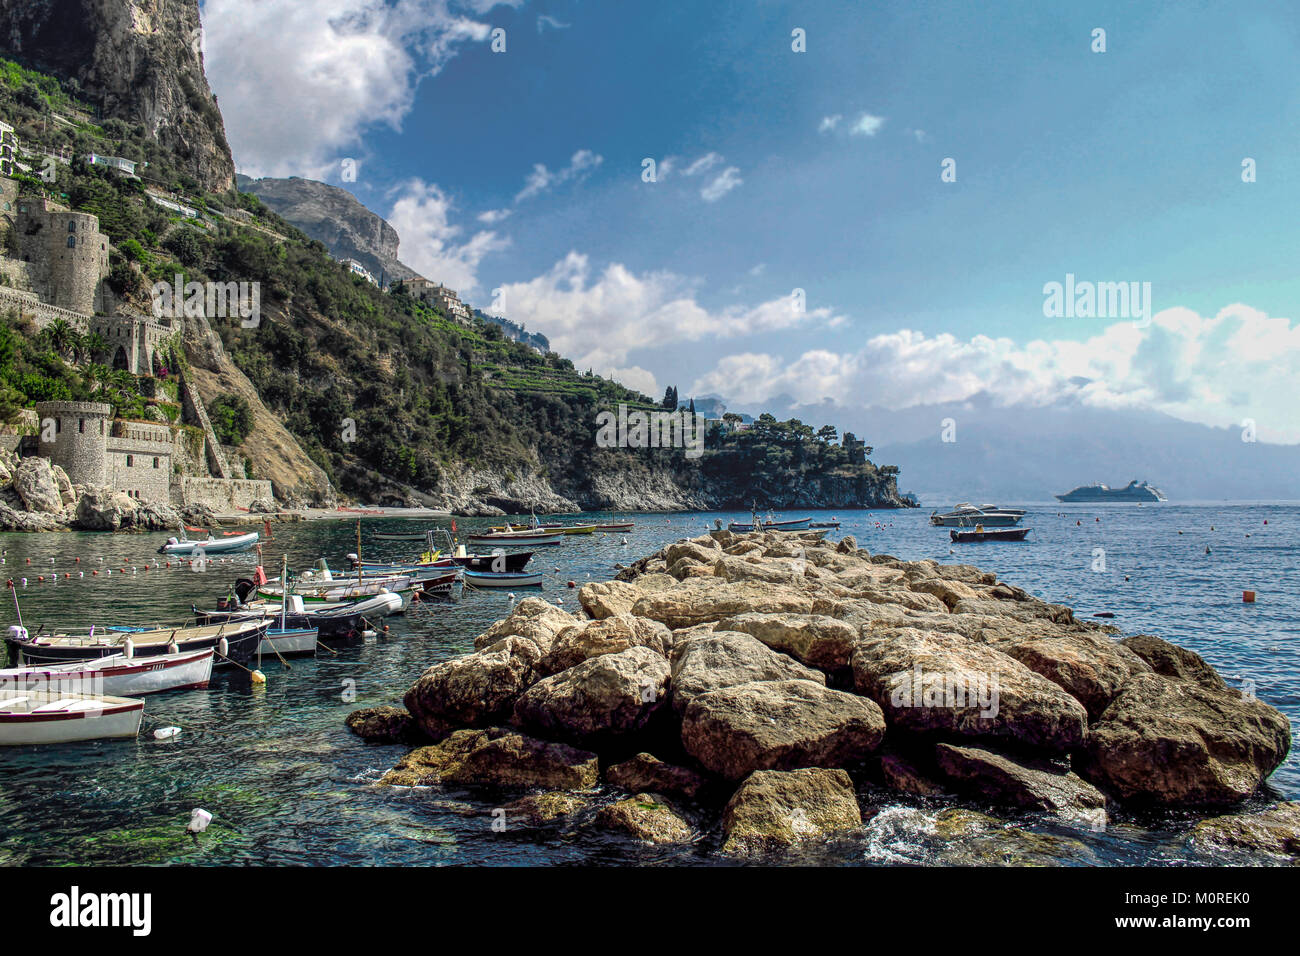 Amazing sunny day in Amalfi Coast - Conca dei Marini Beach - Stock Image